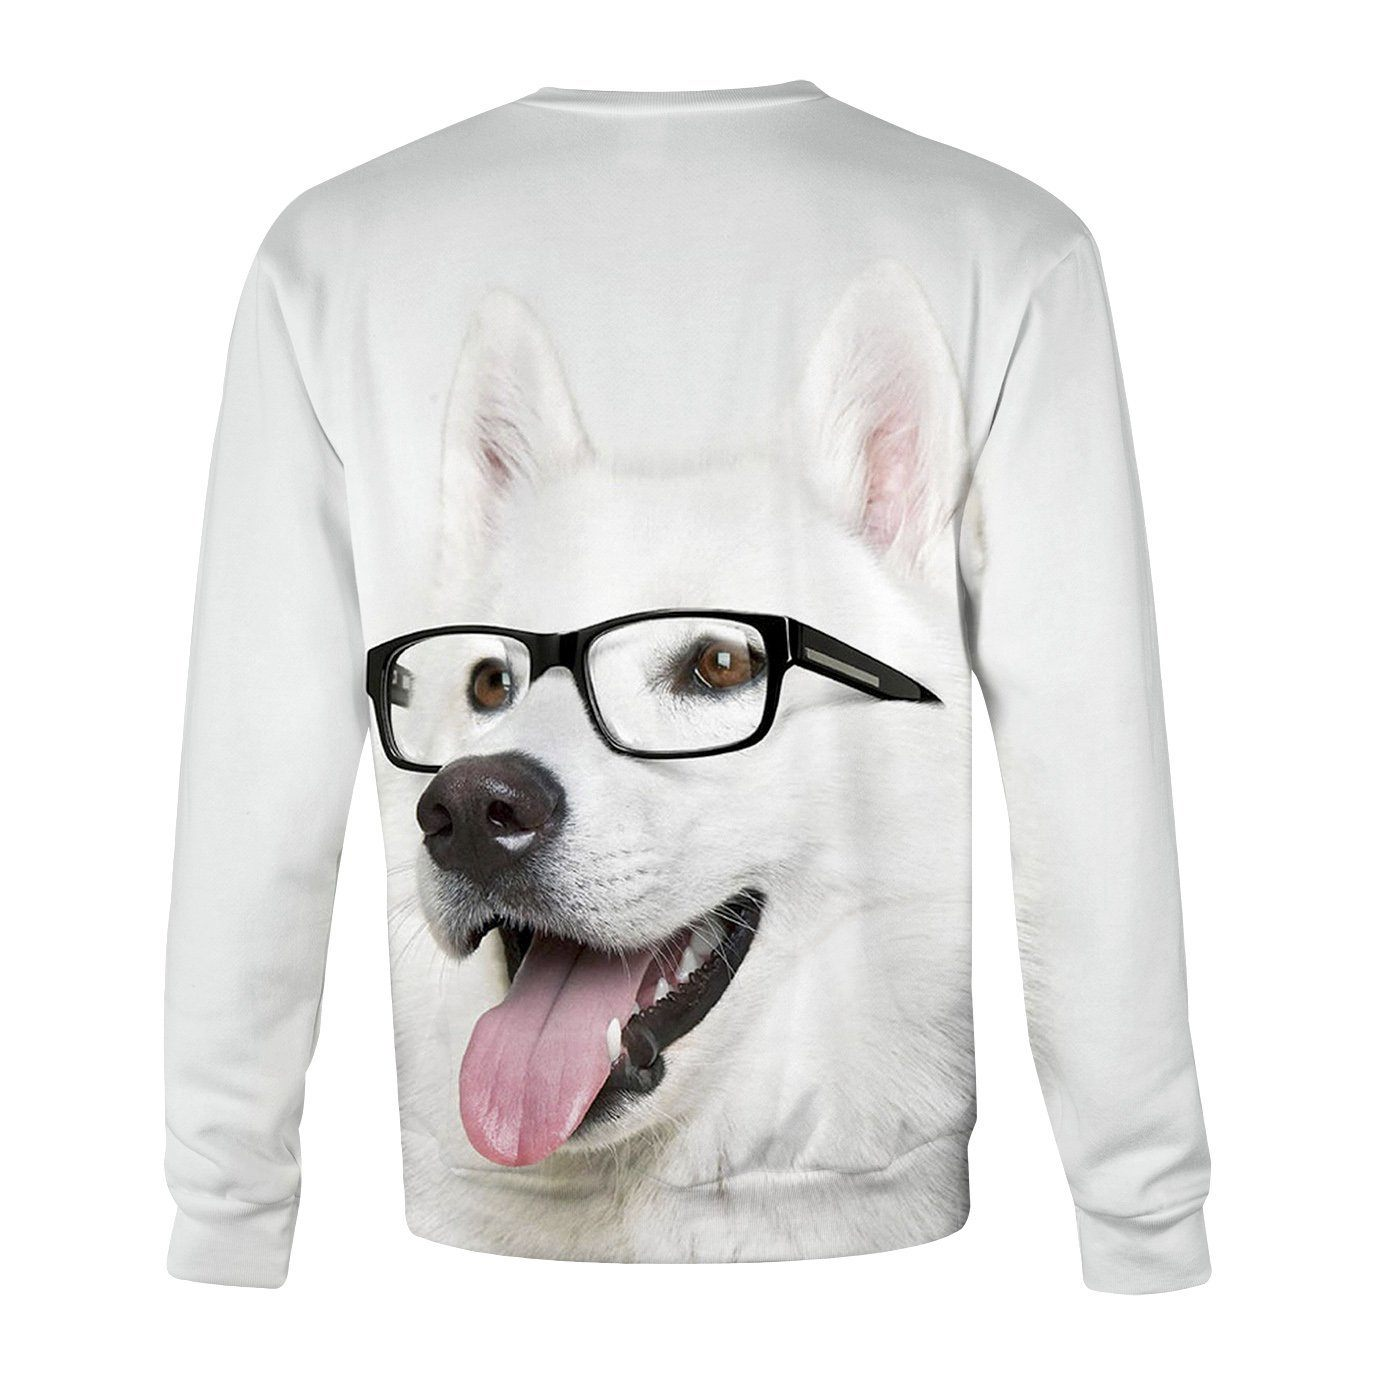 Smart Doggo Sweatshirt